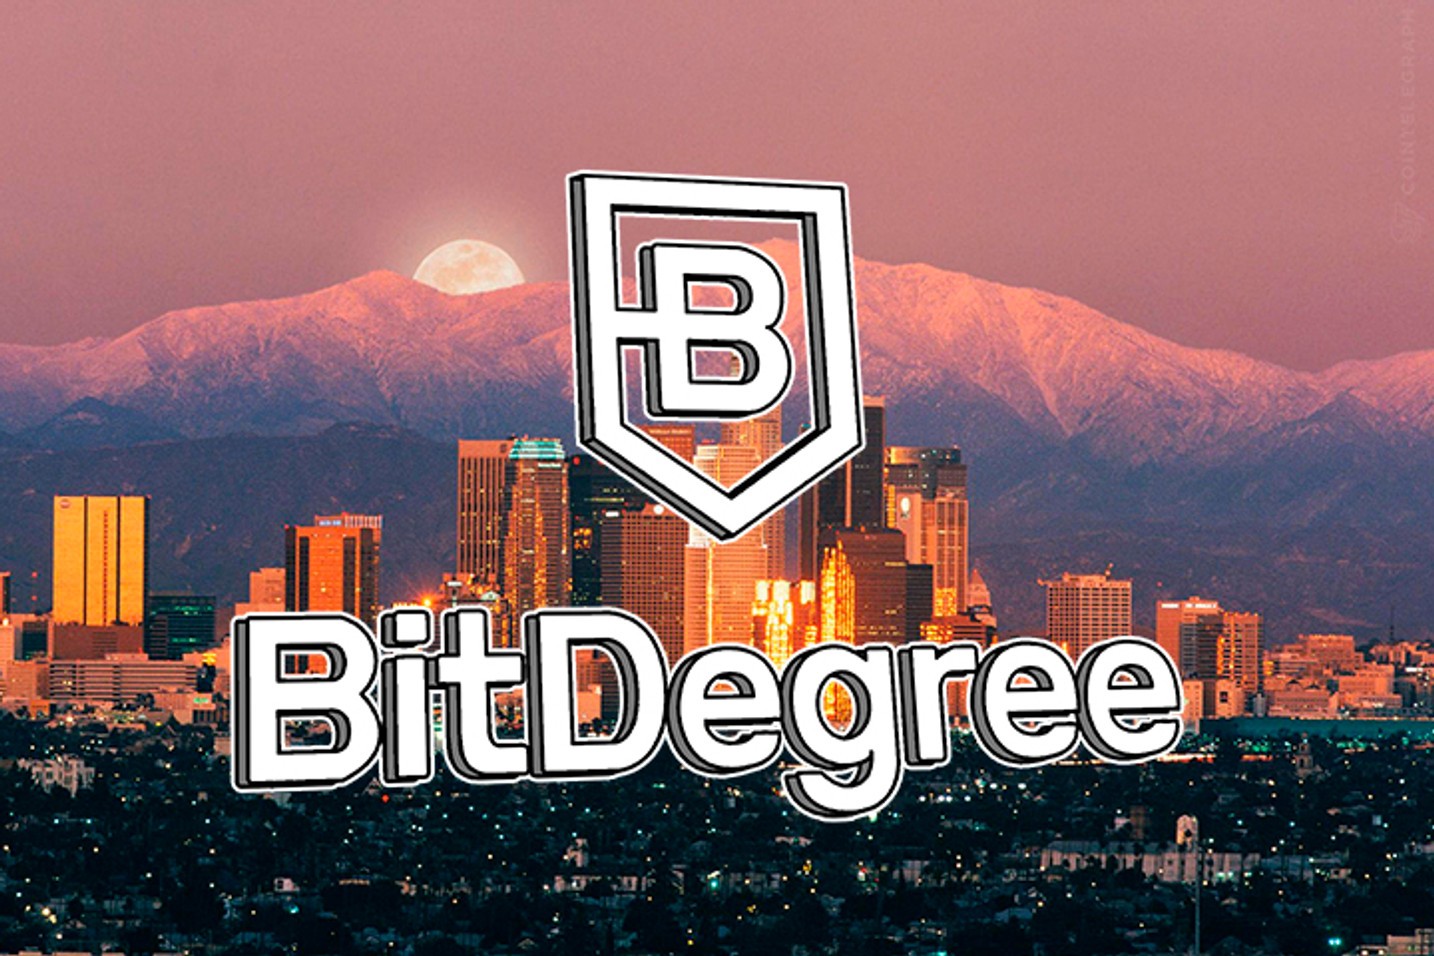 EA Co-Founder Jeff Burton to Advise BitDegree on a Course to Revolutionize Education with Blockchain